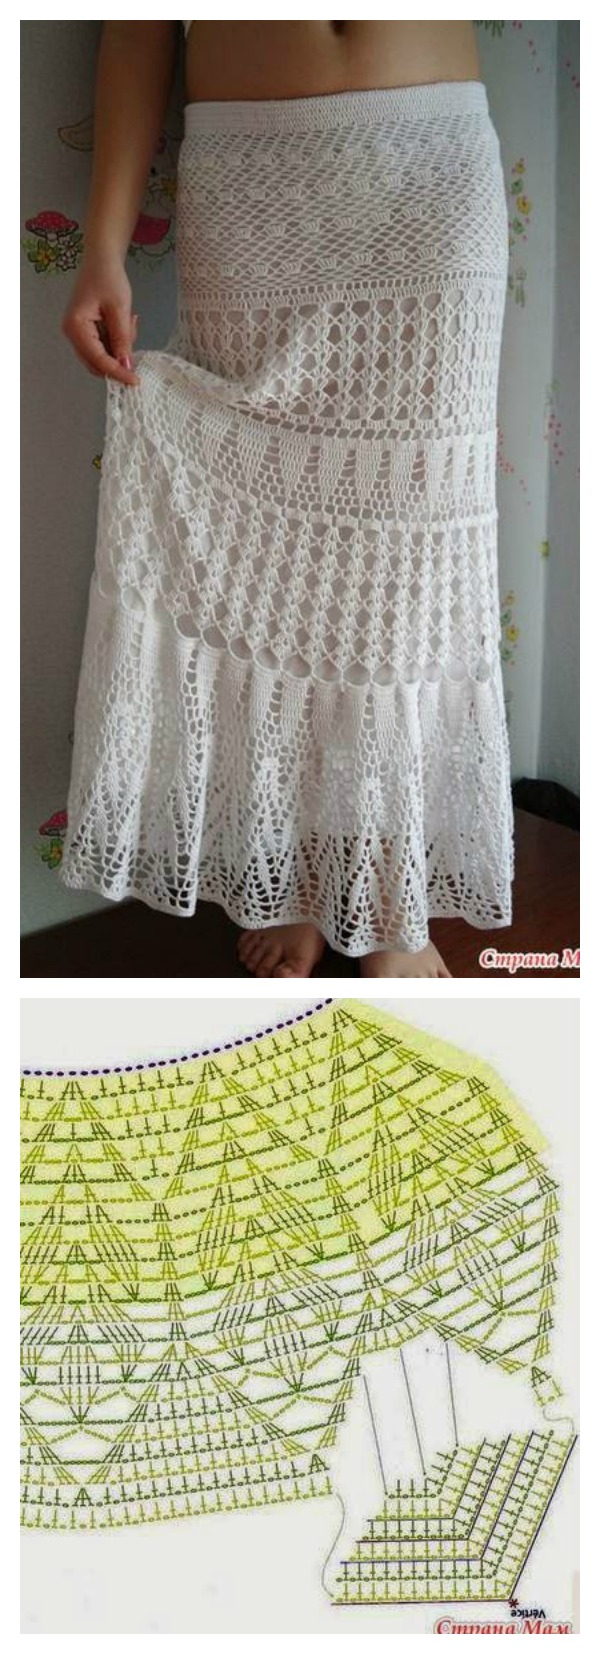 Free Crochet Pattern Maxi Skirt : Crochet Skirts Free Patterns